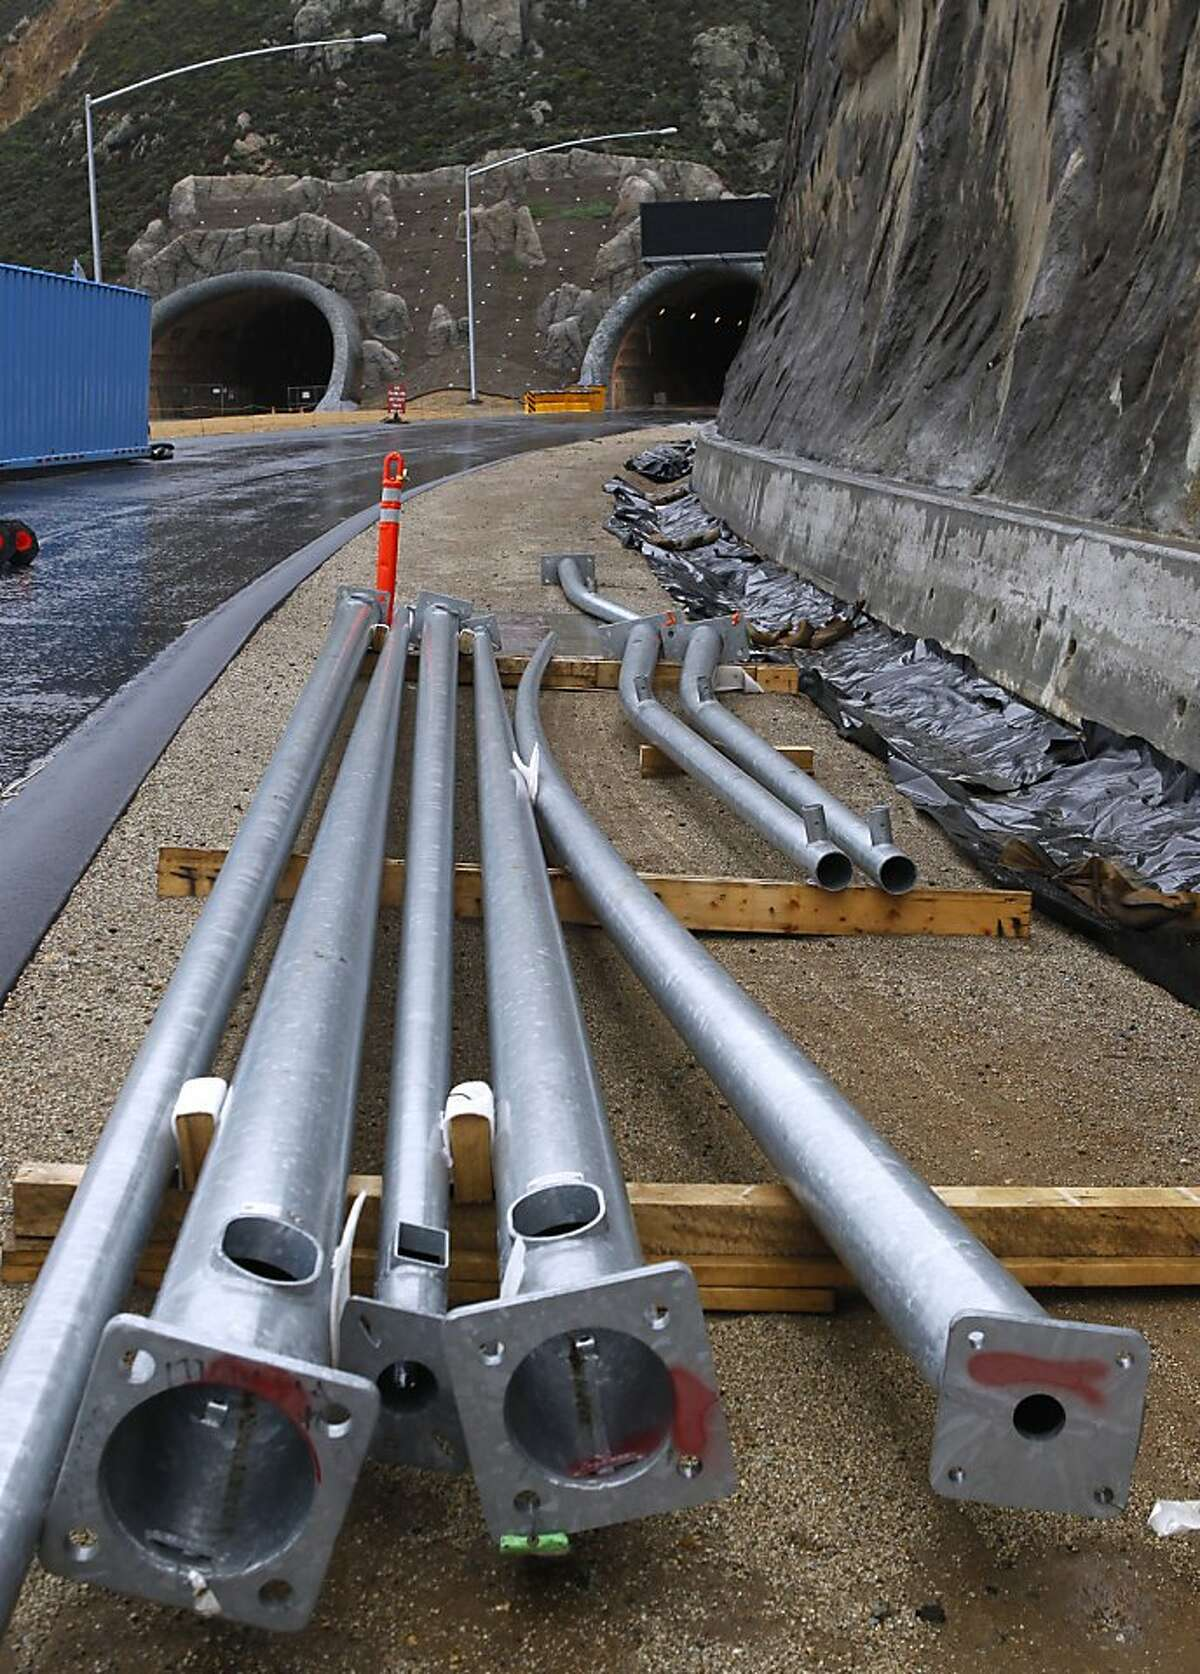 Utility poles wait to be installed on the south end of the Devil's Slide Tunnel project in Pacifica, Calif. on Friday, Dec. 21, 2012. Caltrans plans to open the twin bores early next year.